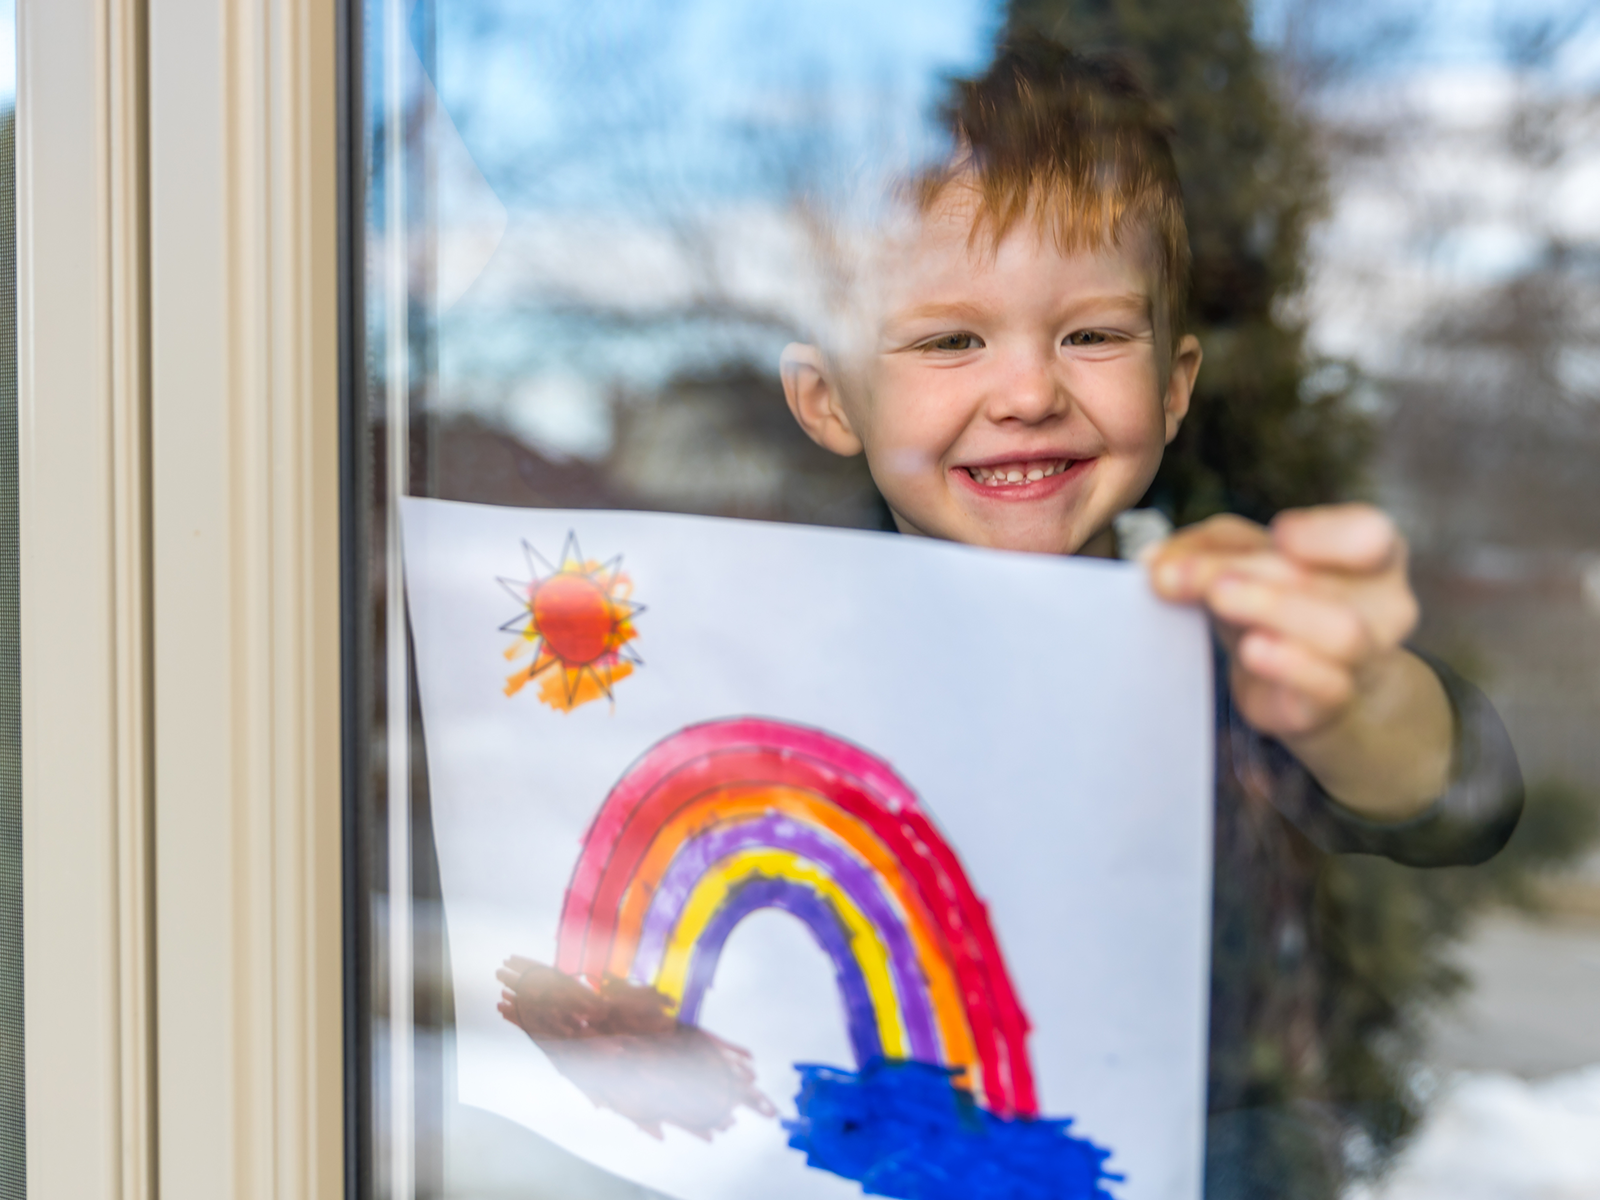 little boy at home behind a window holding up a rainbow drawing